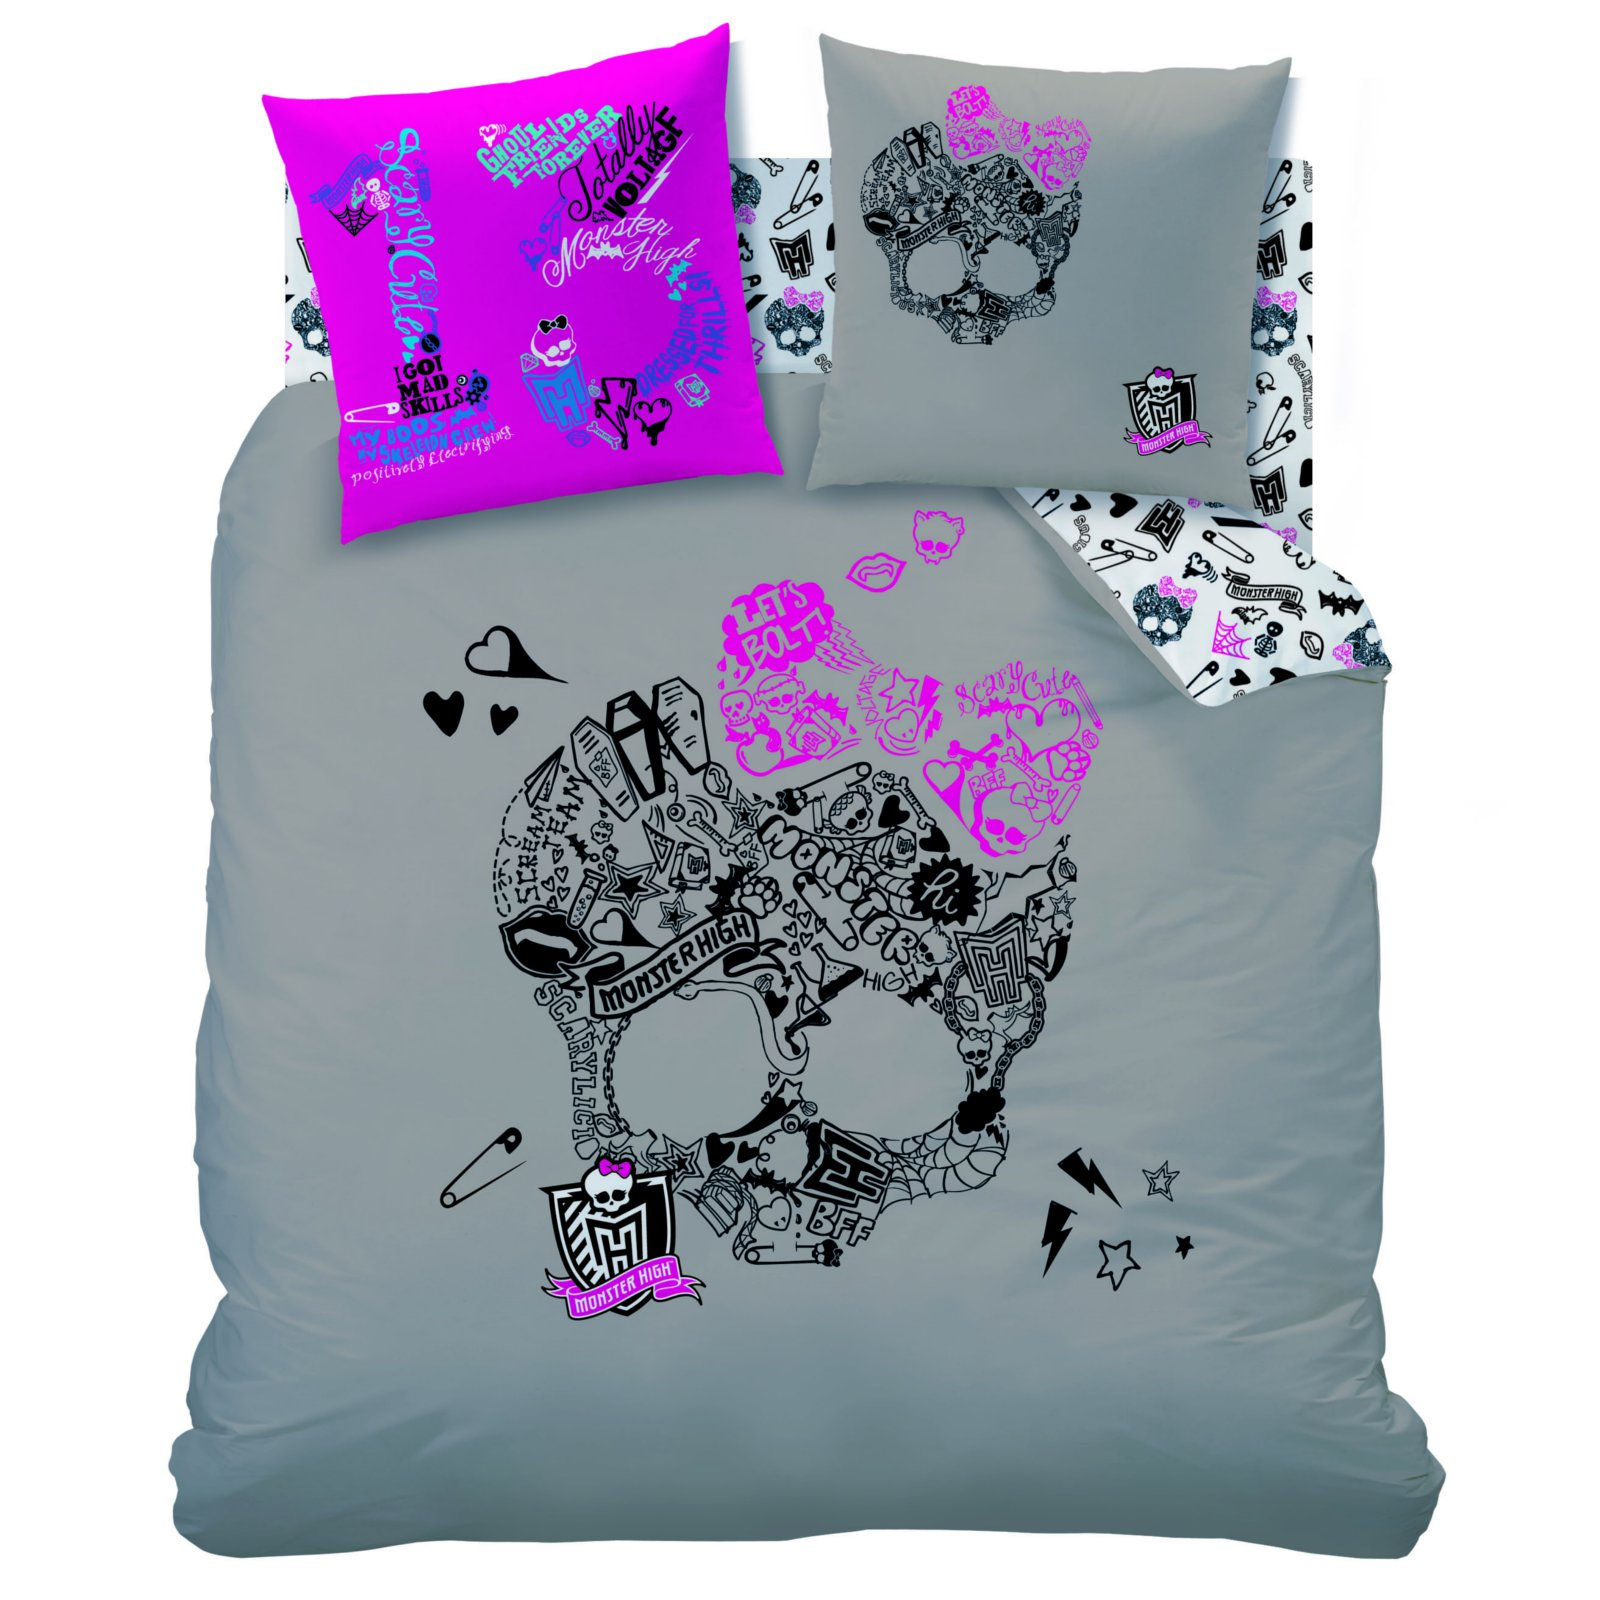 housse de couette monster high parure de lit 240 x 220. Black Bedroom Furniture Sets. Home Design Ideas